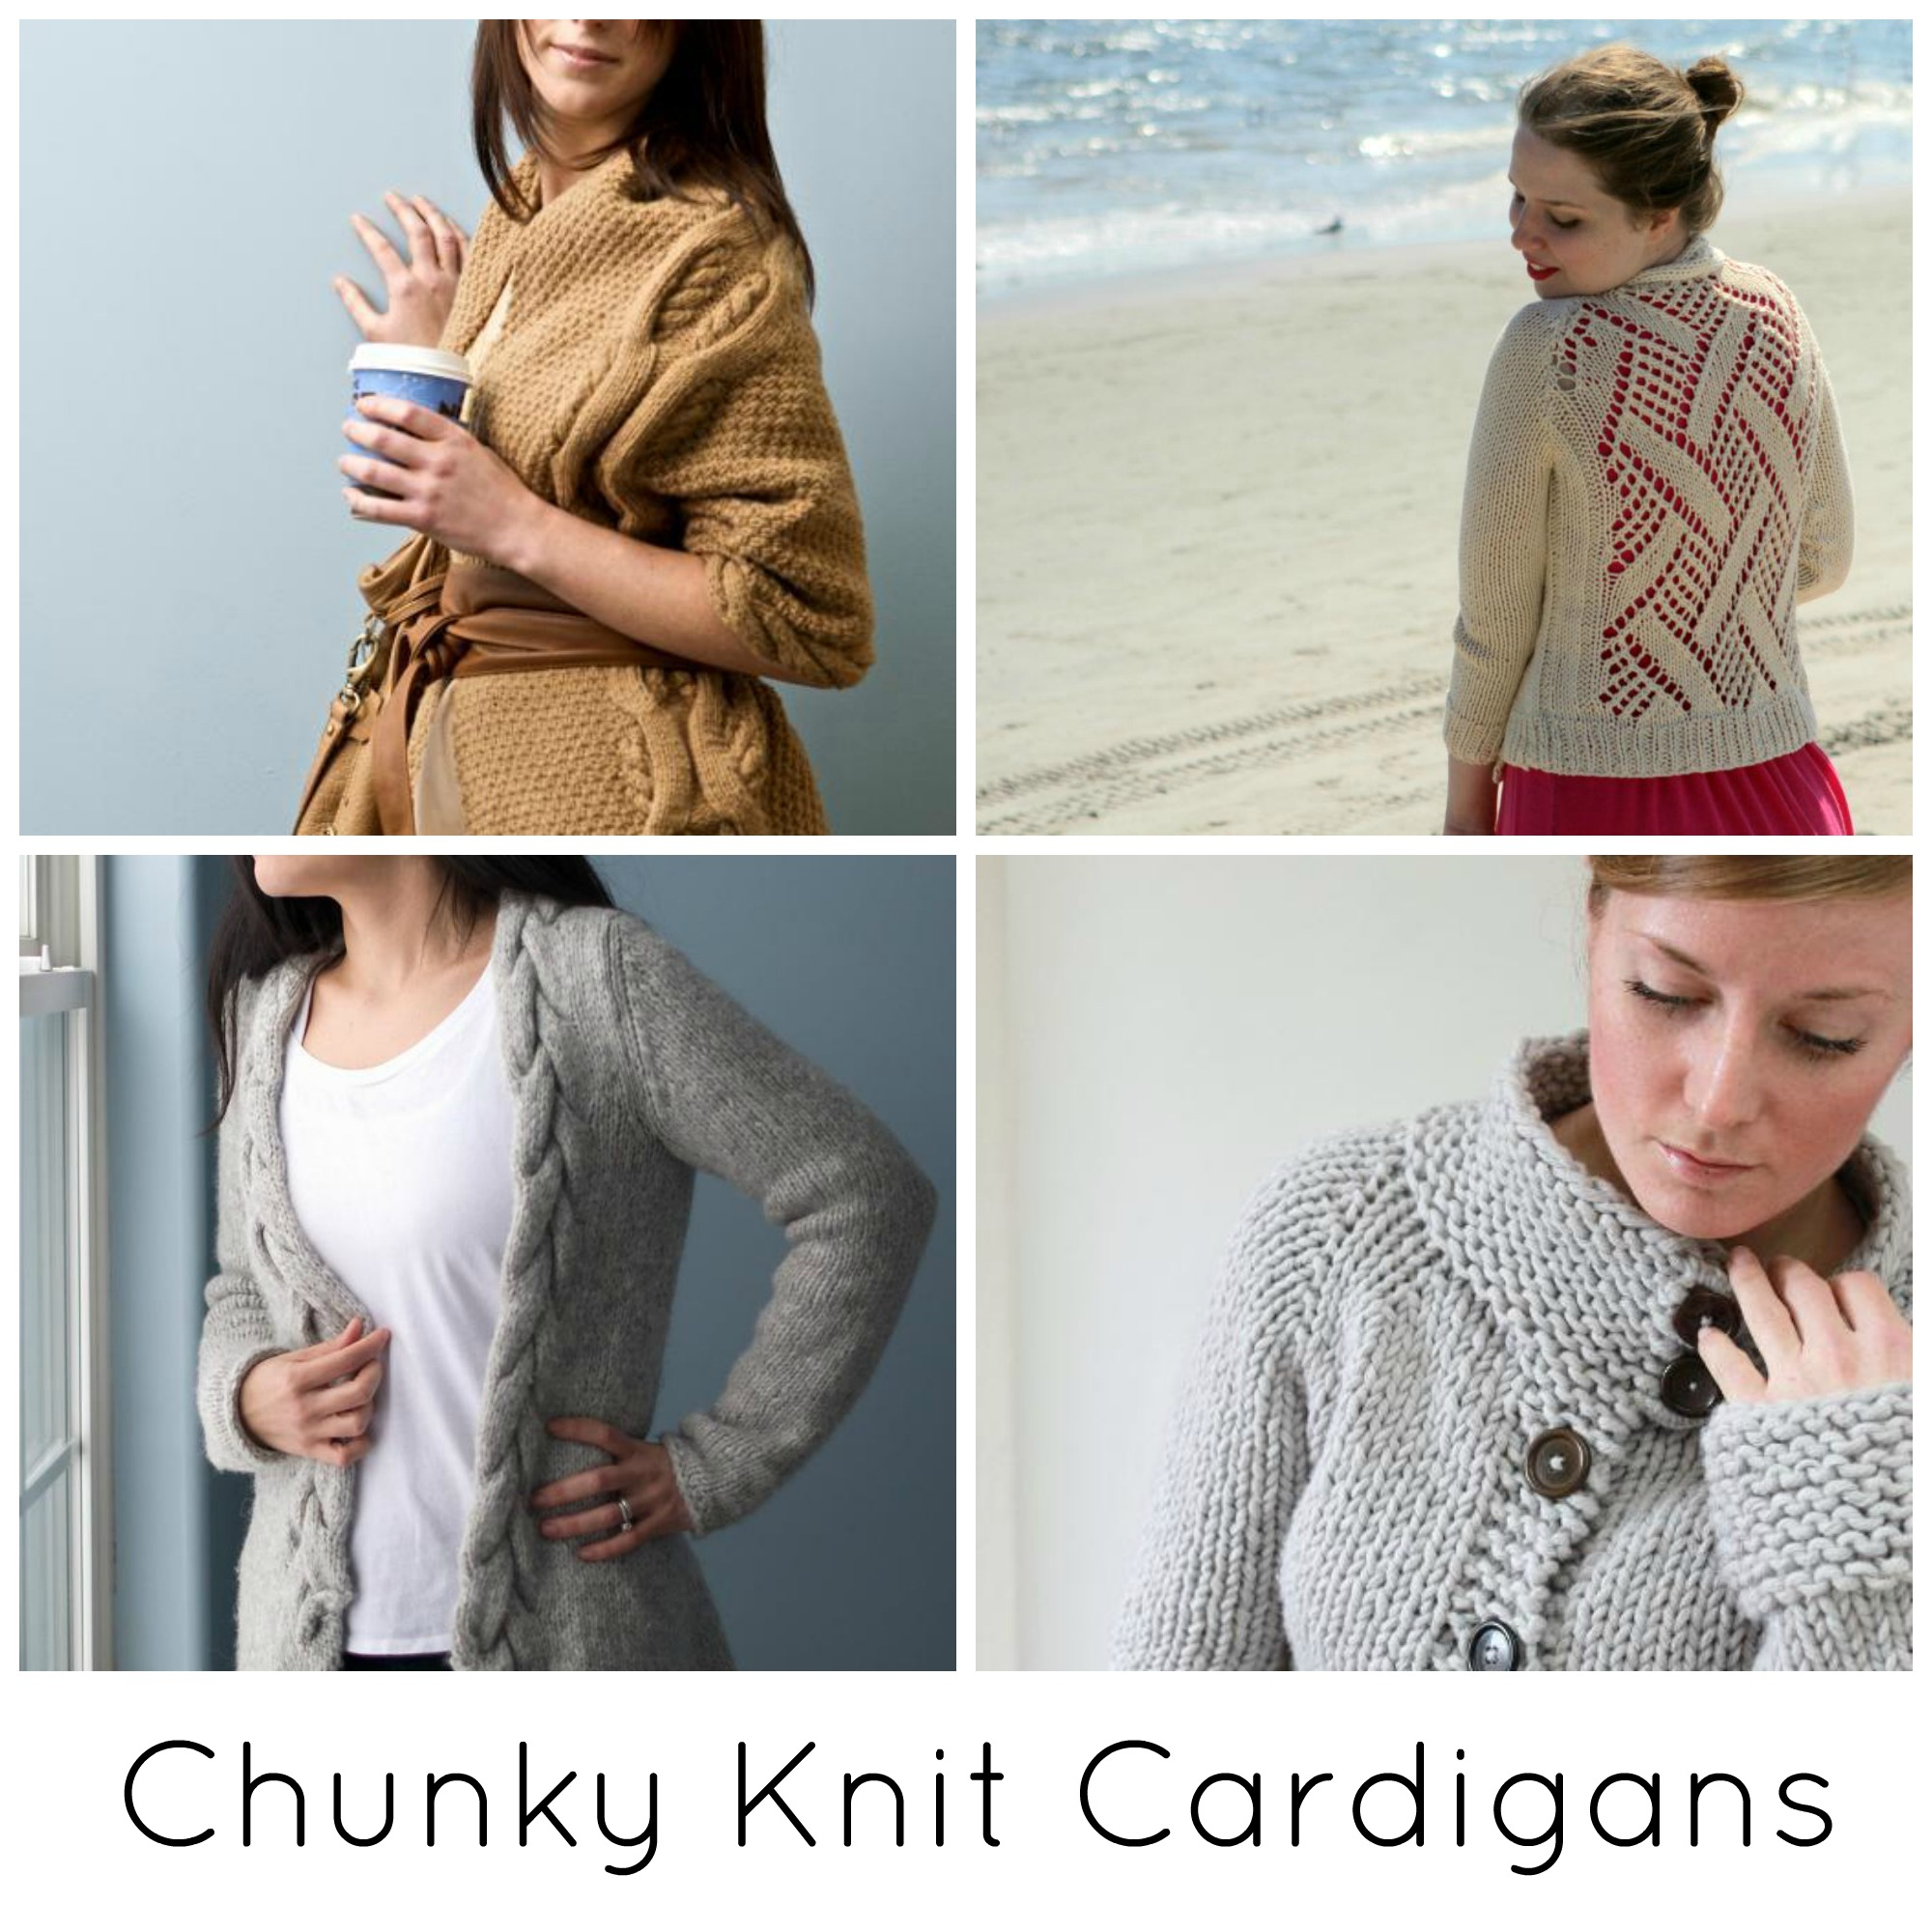 Free Cardigan Knitting Pattern The Coziest Chunky Knit Cardigan Patterns Ever